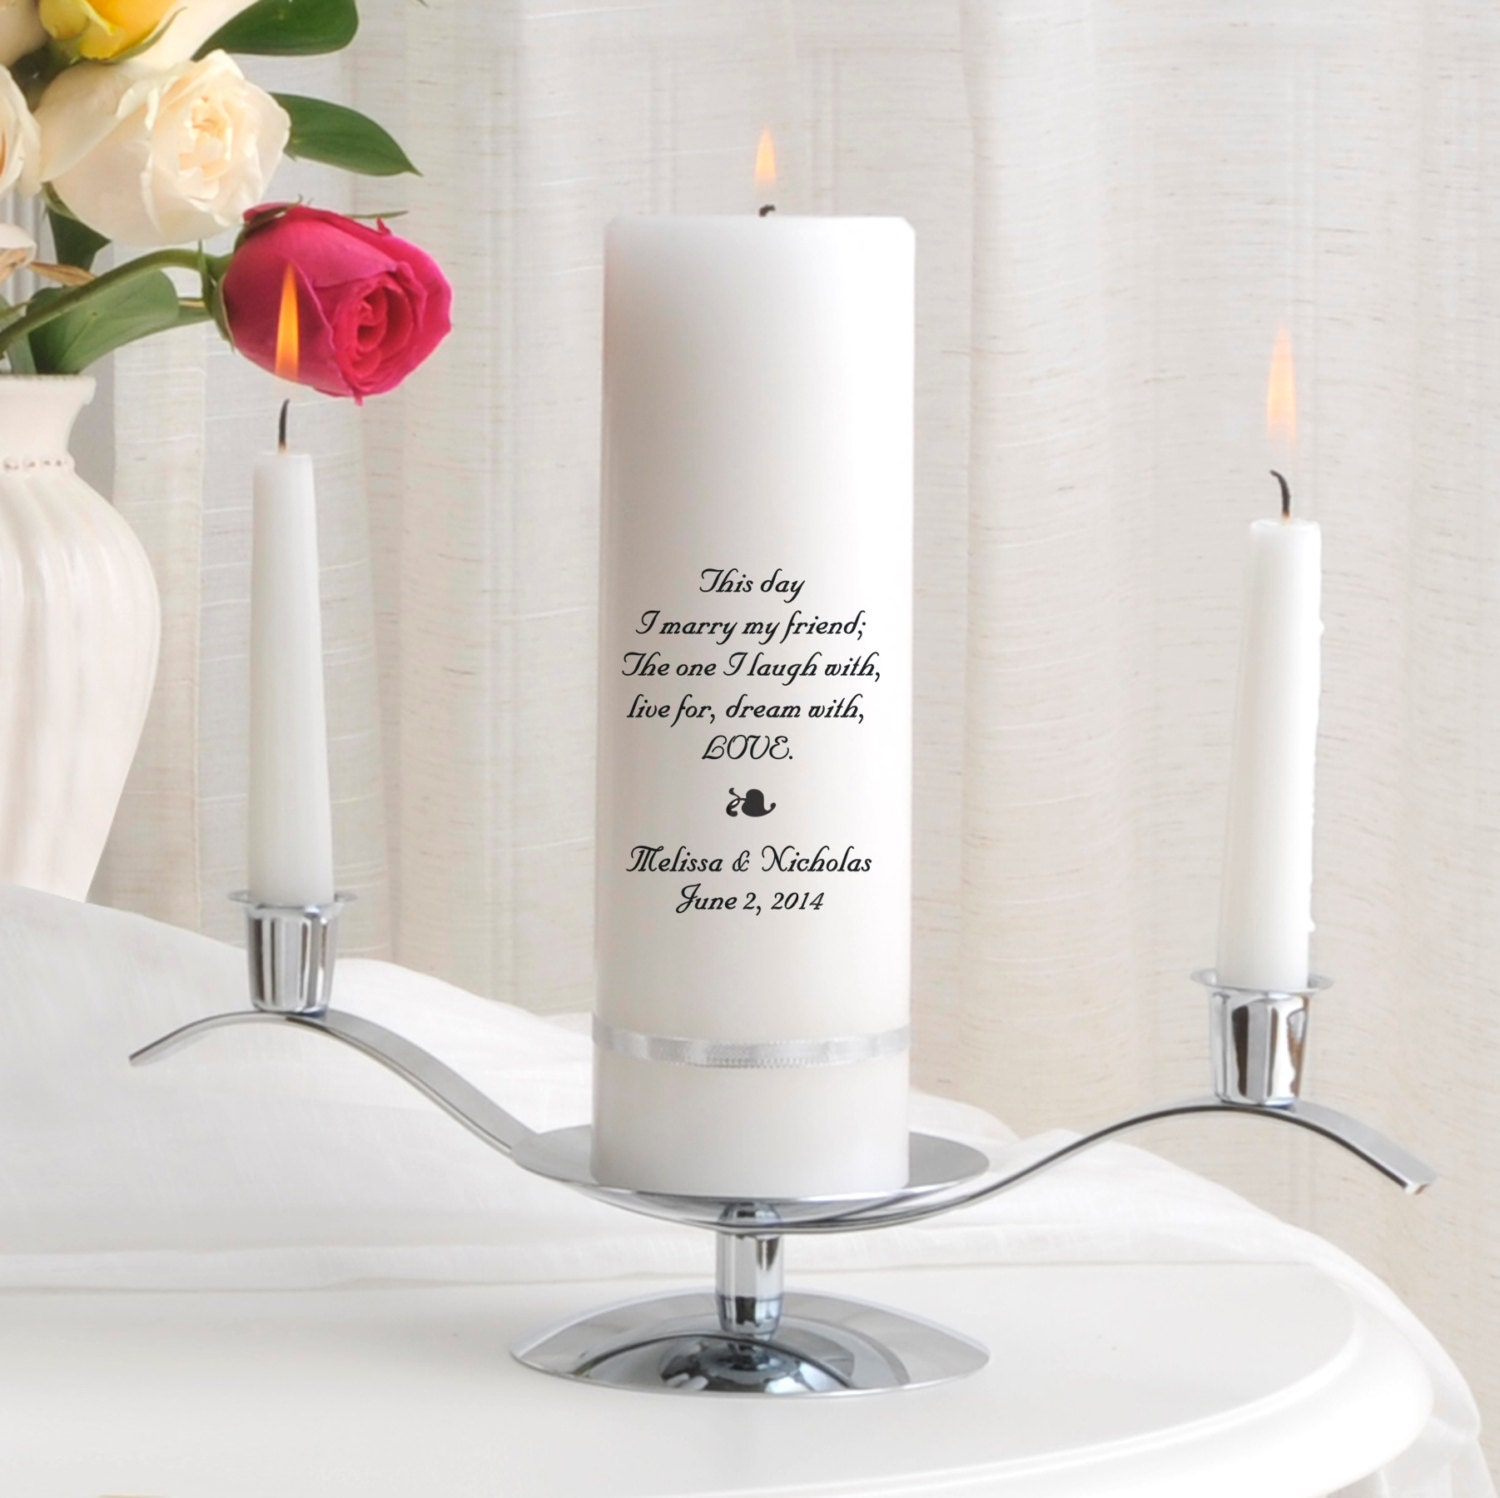 Wedding Candles: Unity Candle Set Personalized Wedding Candle Sets Unity